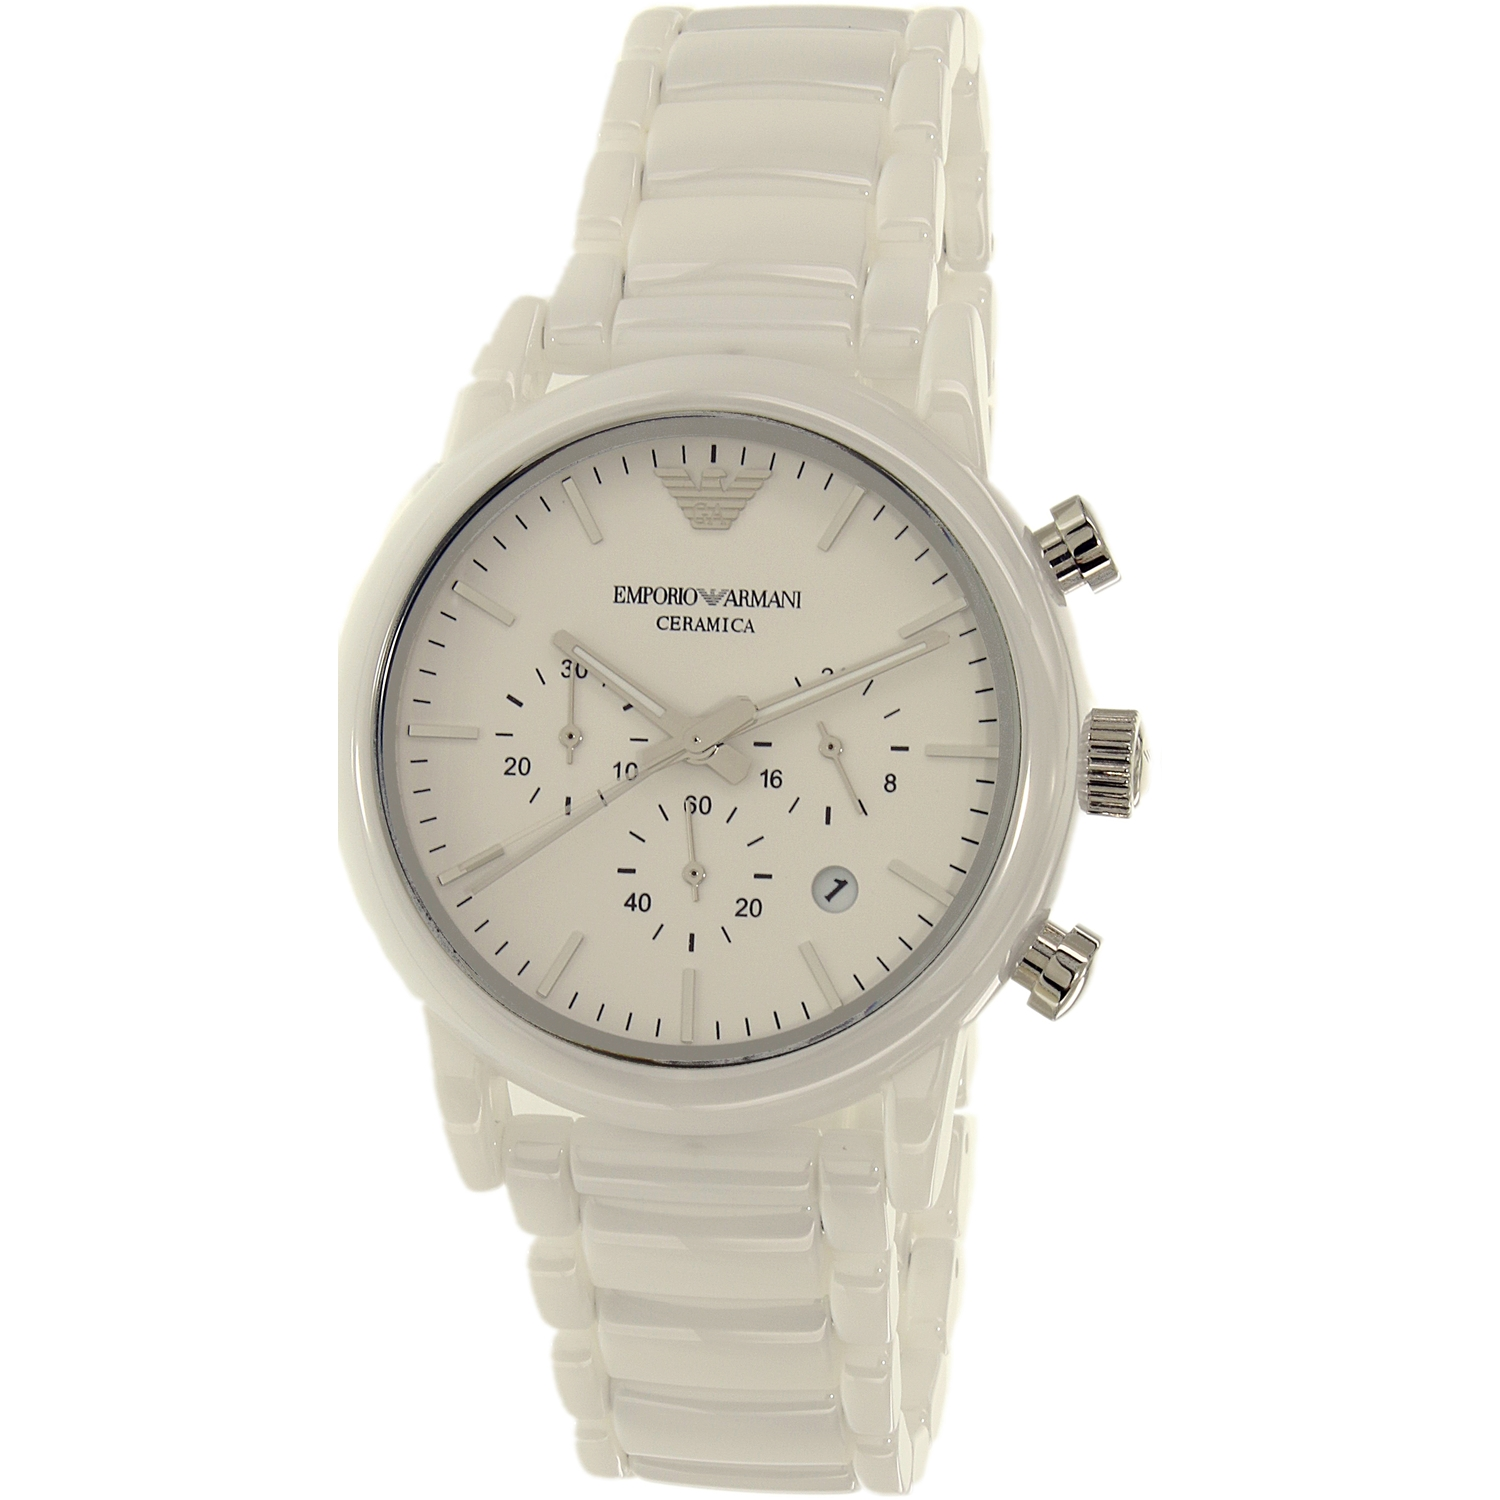 Emporio Armani Men's AR1499 White Ceramic Quartz Dress Watch